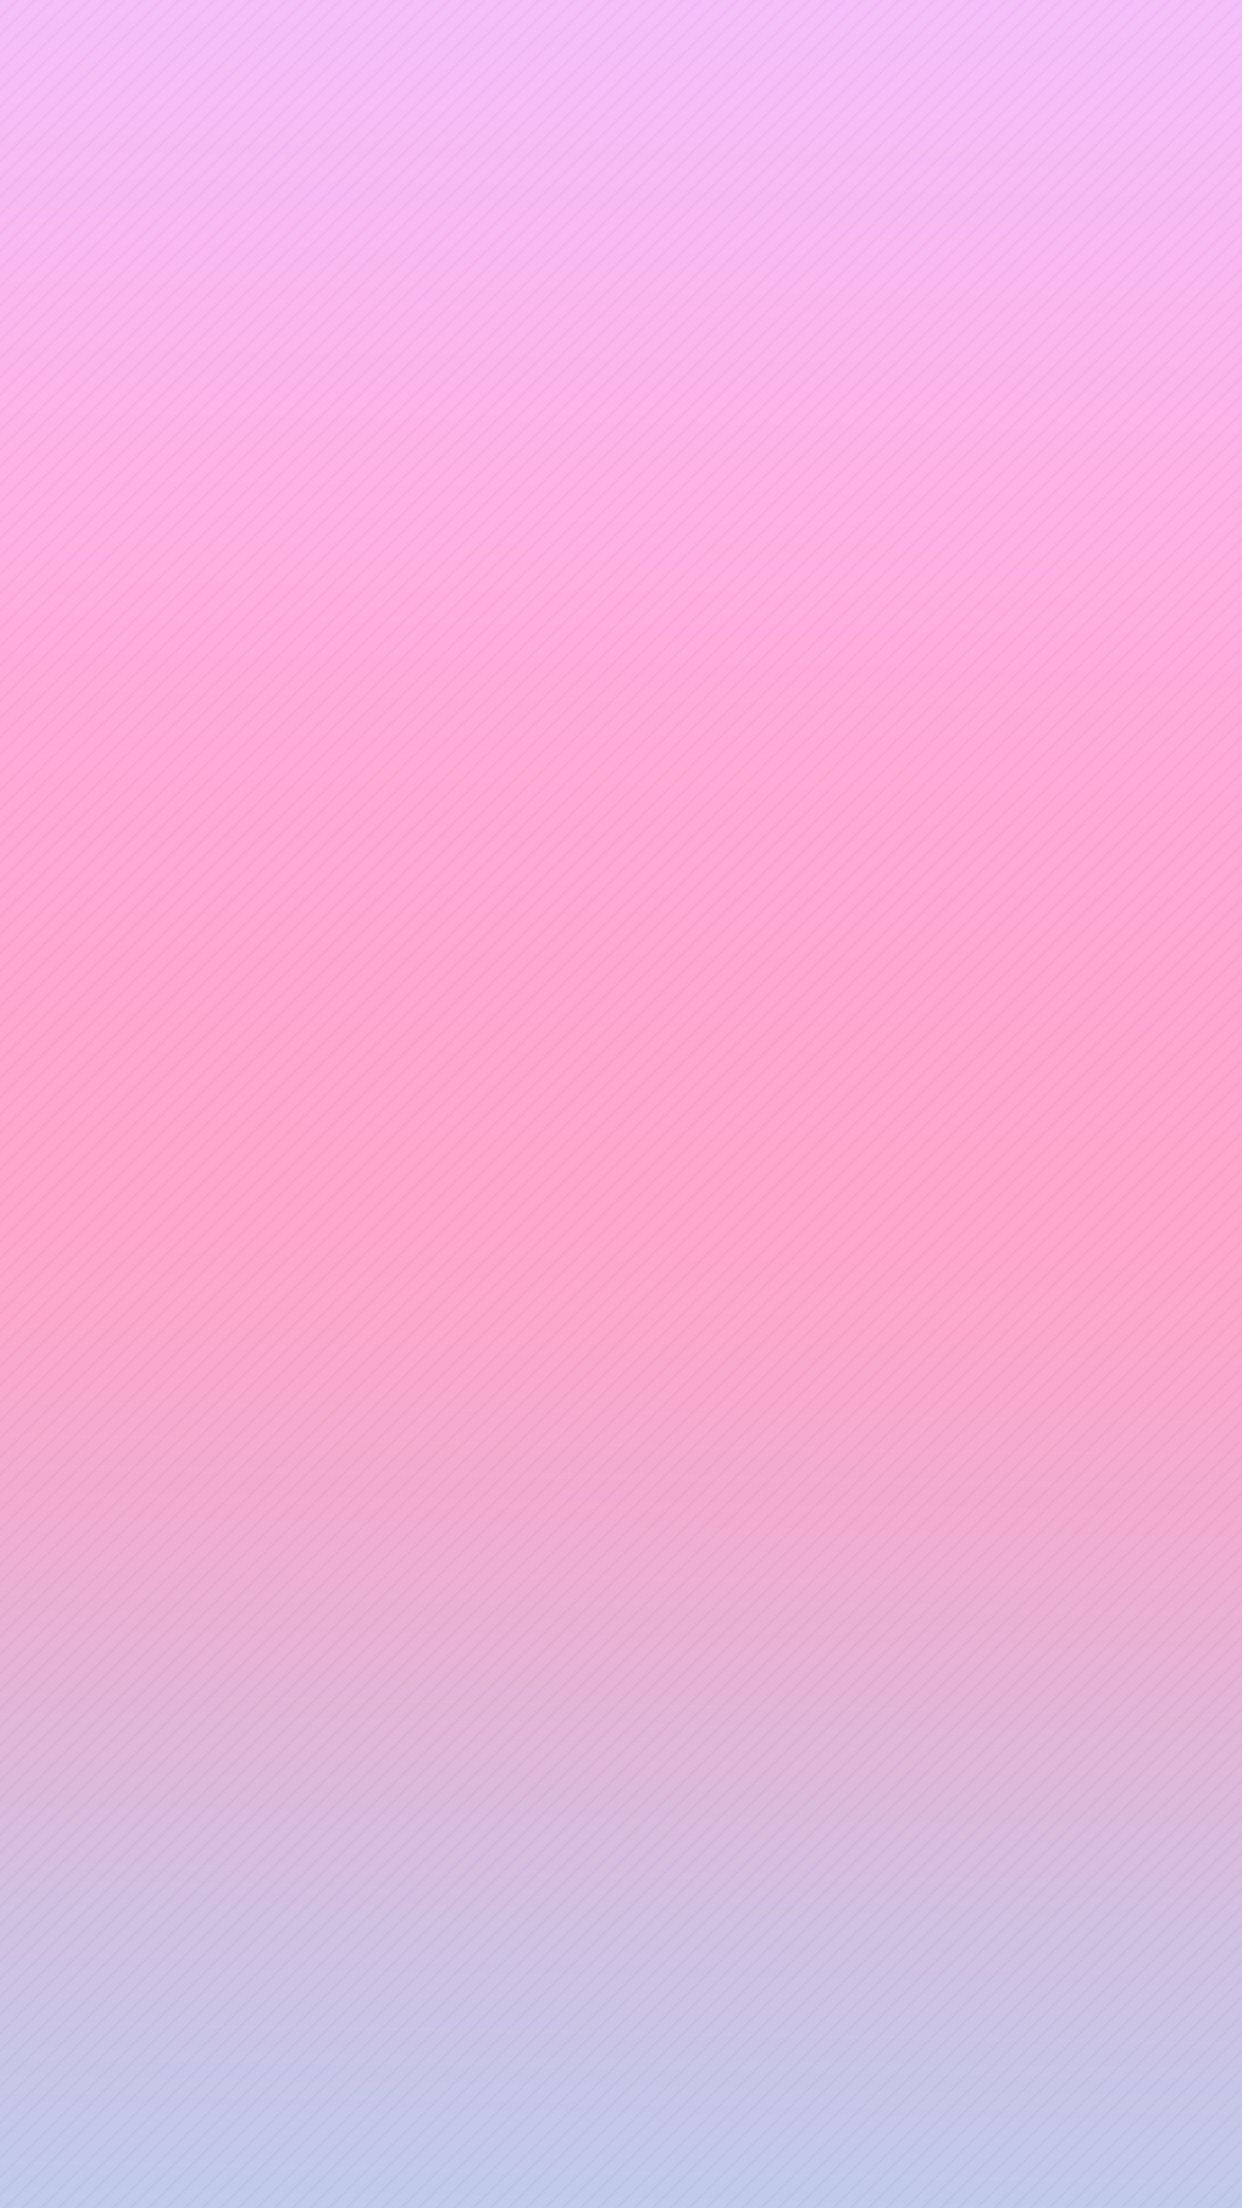 Wallpaper, background, iPhone, Android, HD, pink, purple, gradient,